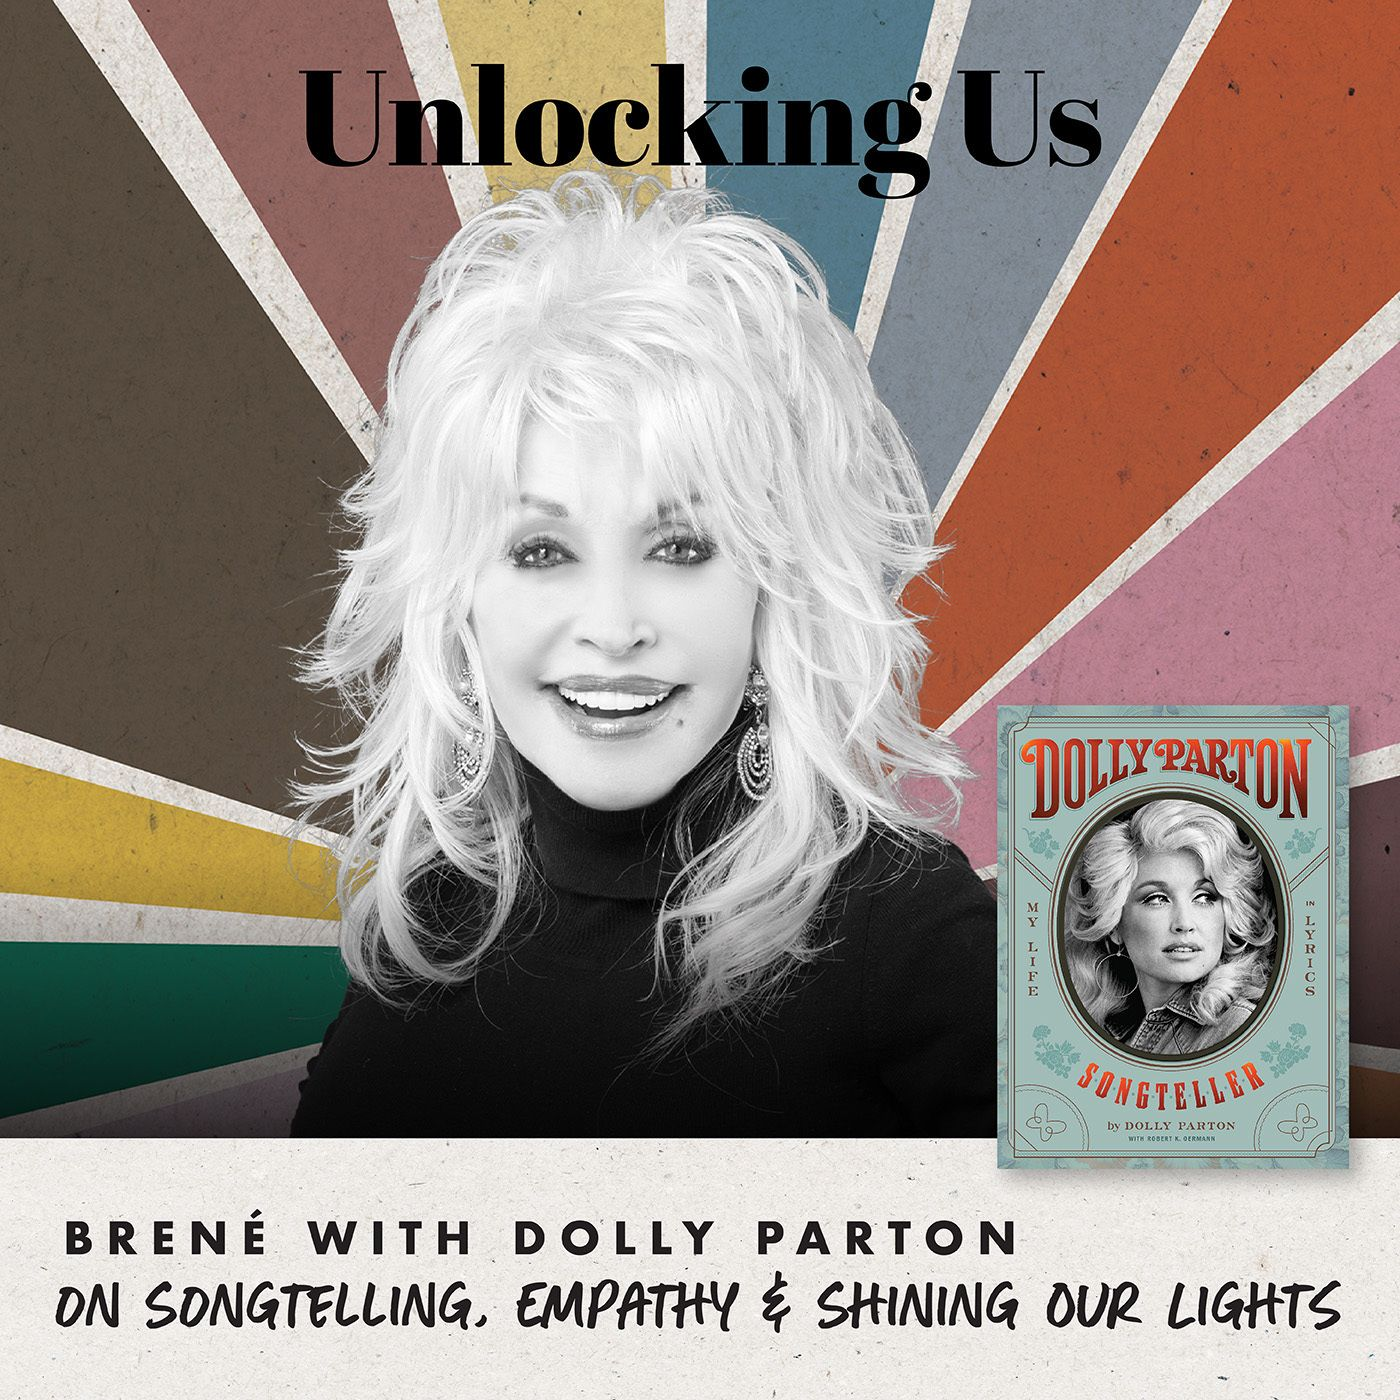 Brené with Dolly Parton on Songtelling, Empathy, and Shining Our Lights